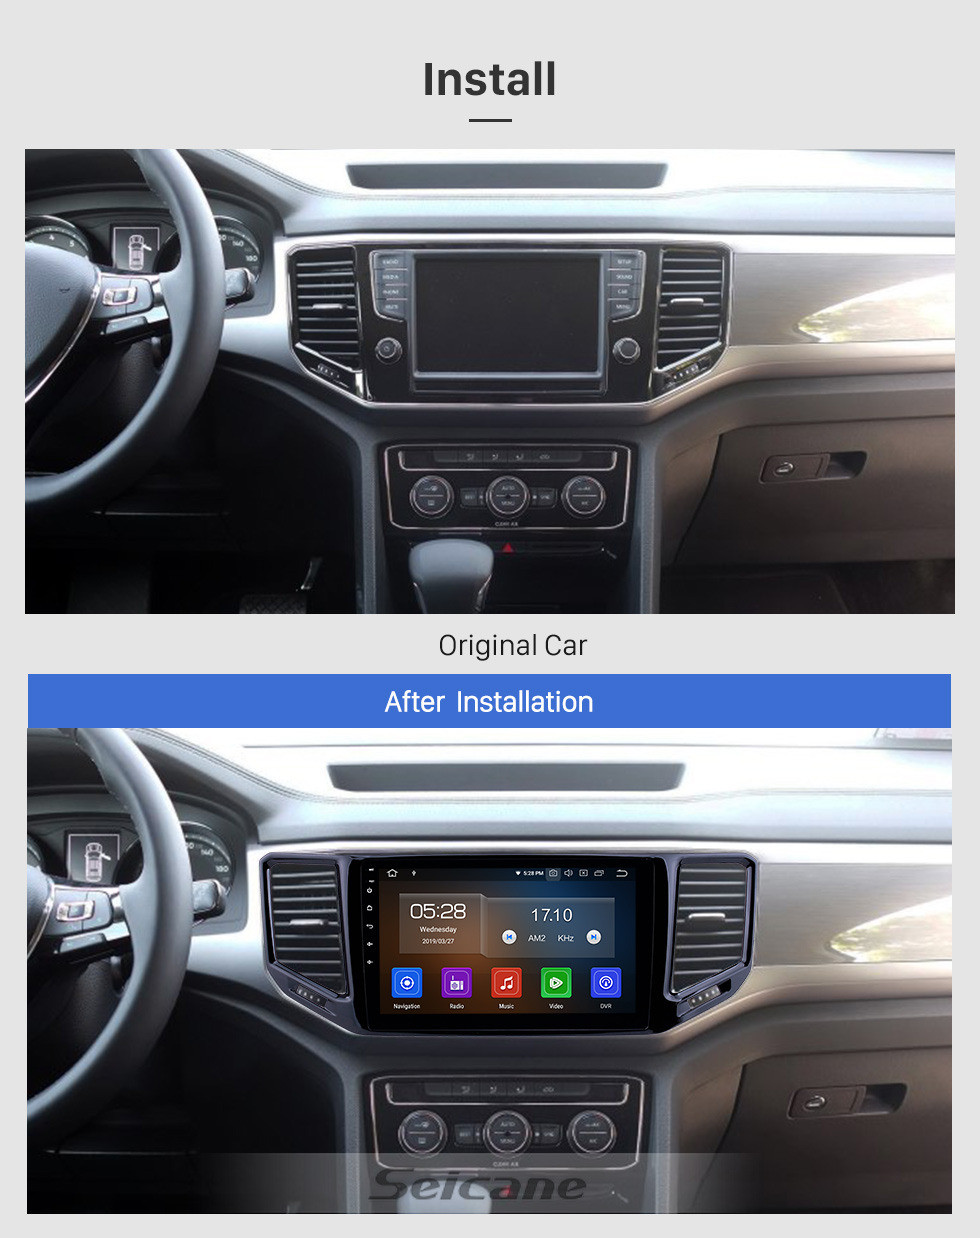 Seicane 10.1 inch 2017-2018 VW Volkswagen Teramont Android 10.0 GPS Navigation Radio Bluetooth HD Touchscreen AUX USB WIFI Carplay support OBD2 1080P